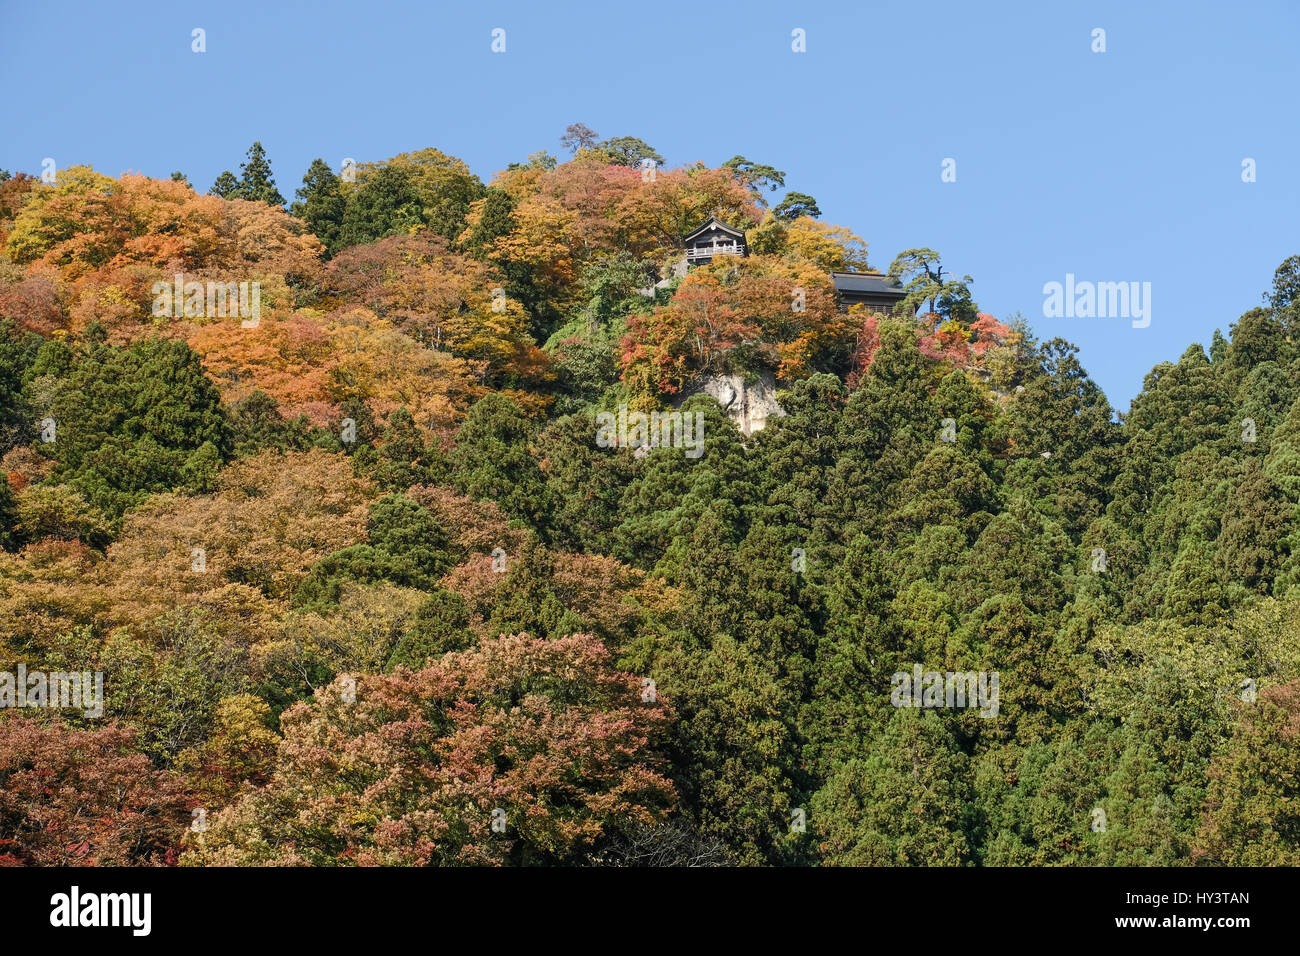 Yamadera Temple at top of mountain with autumn colour trees in Yamagata, Japan - Stock Image